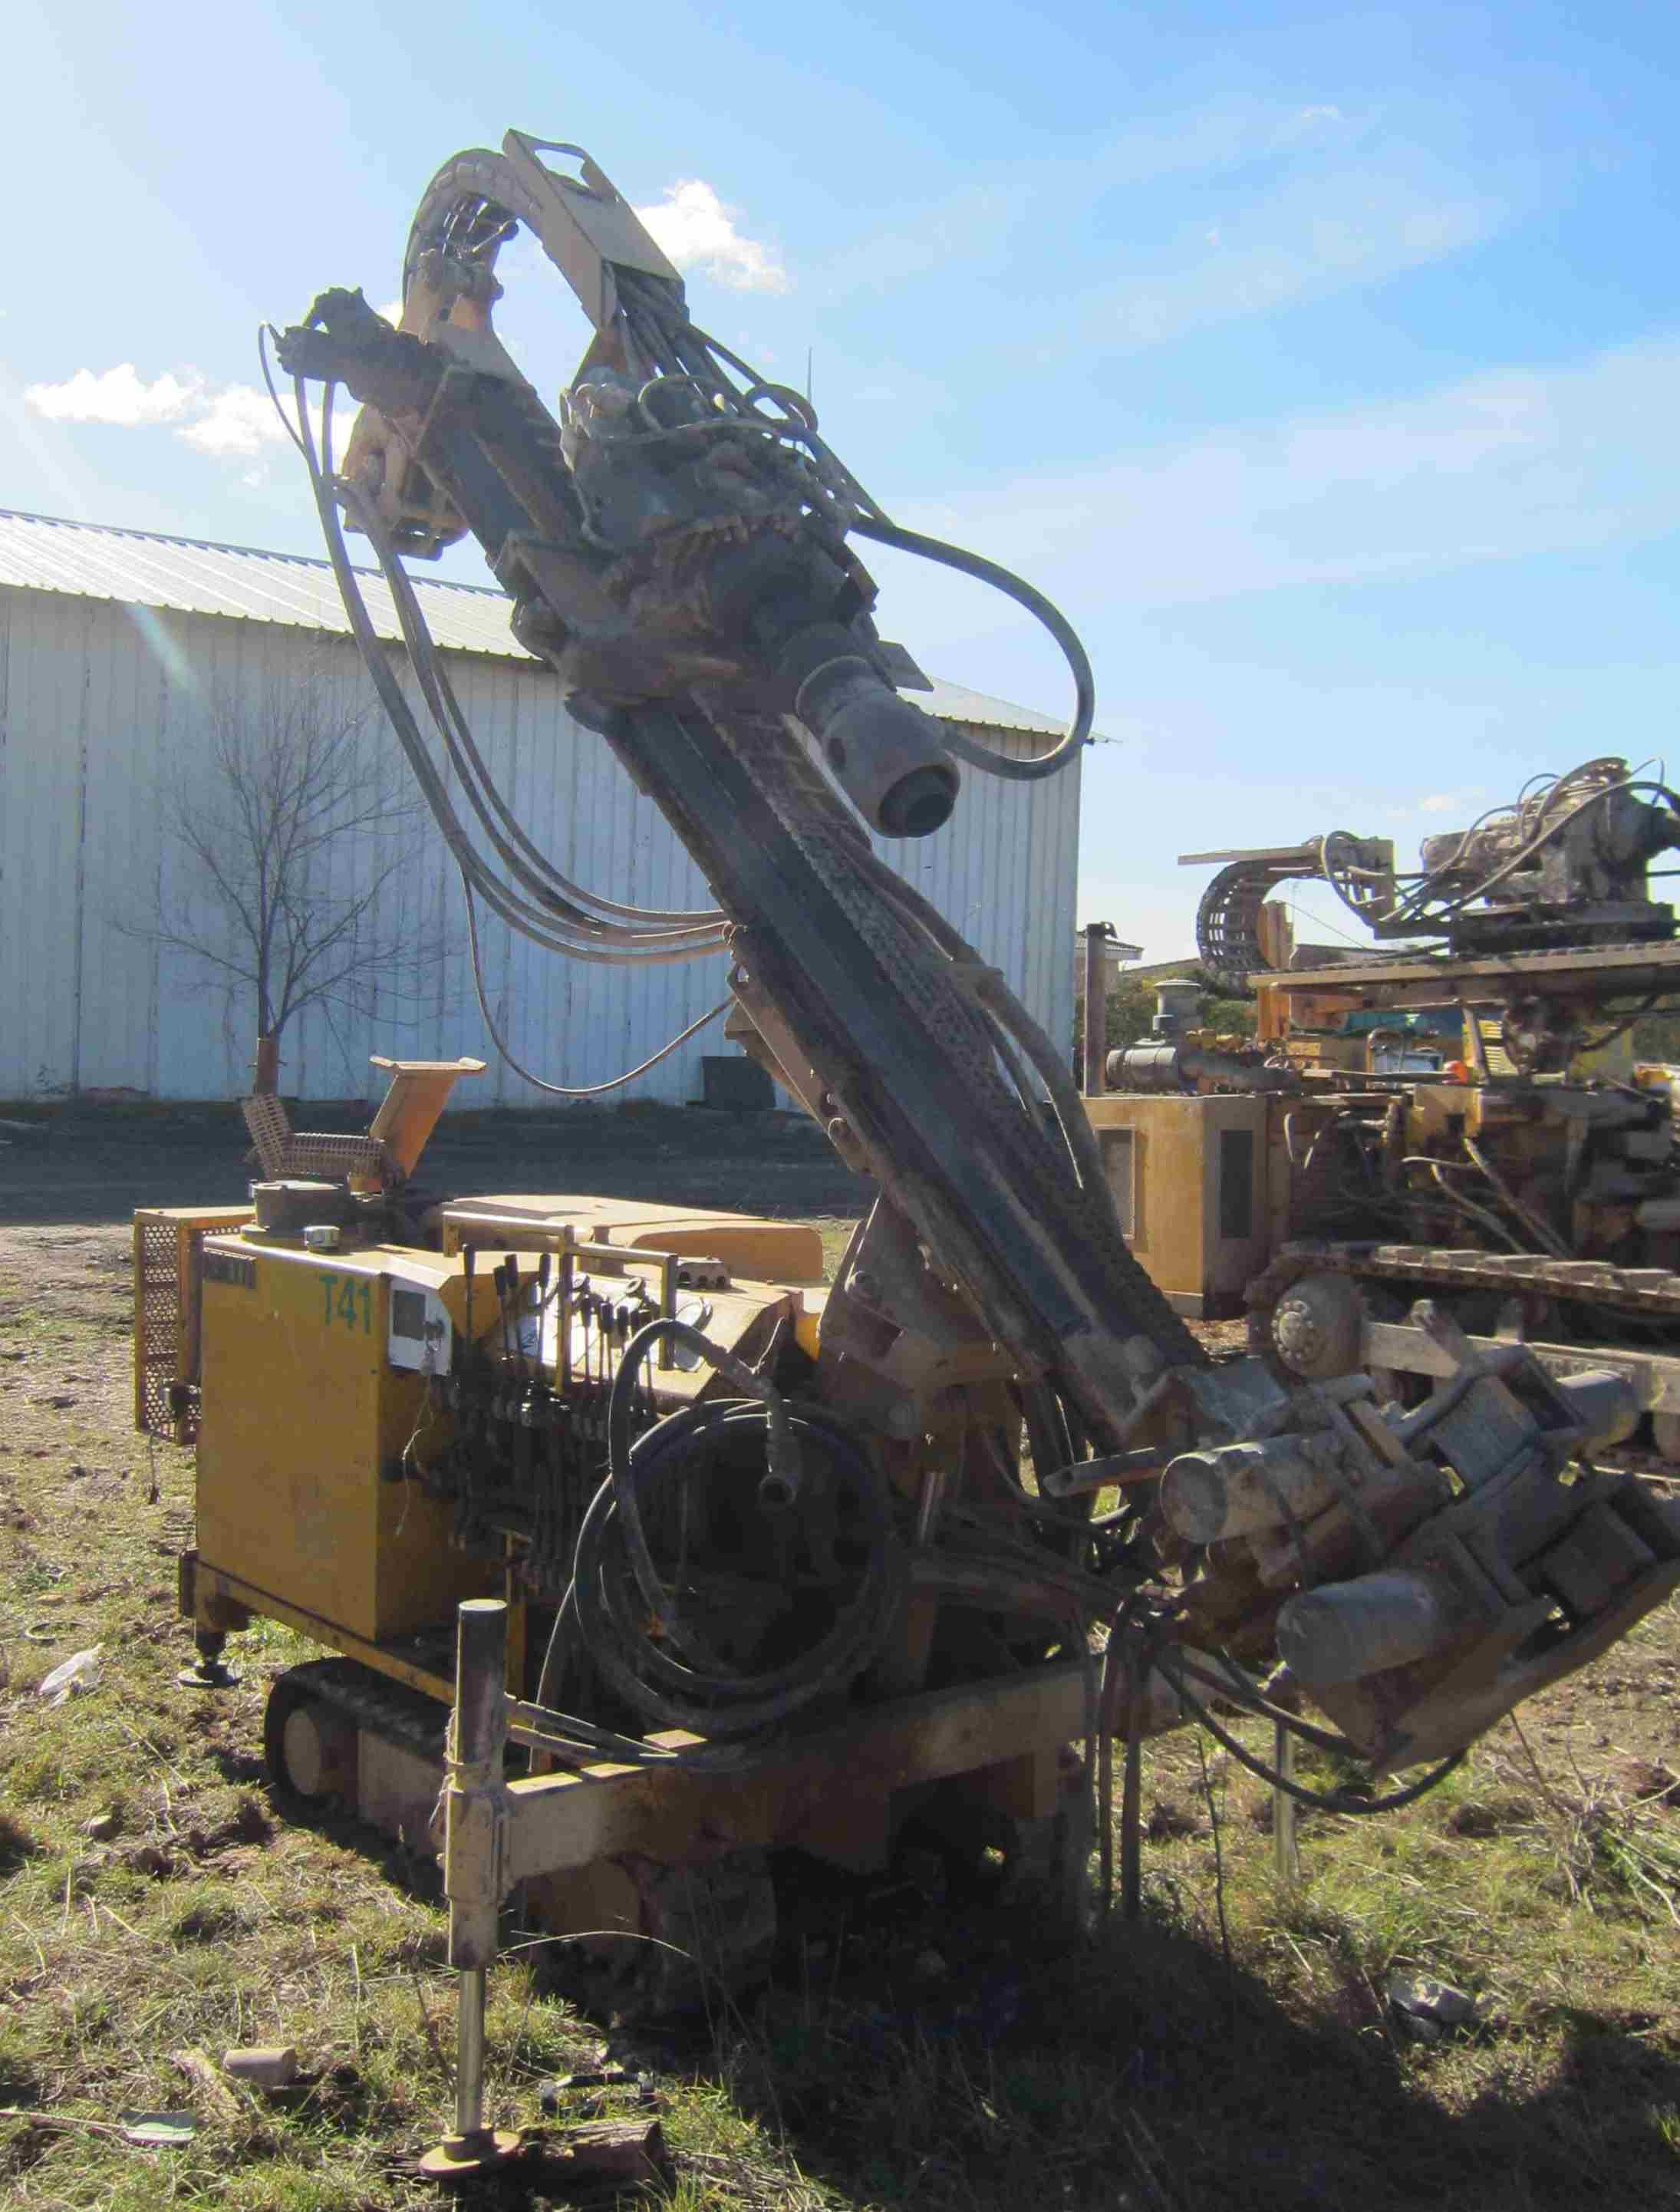 Used BERETTA T41 for rent and sale. used anchoring and micropiling machines for rent or sale